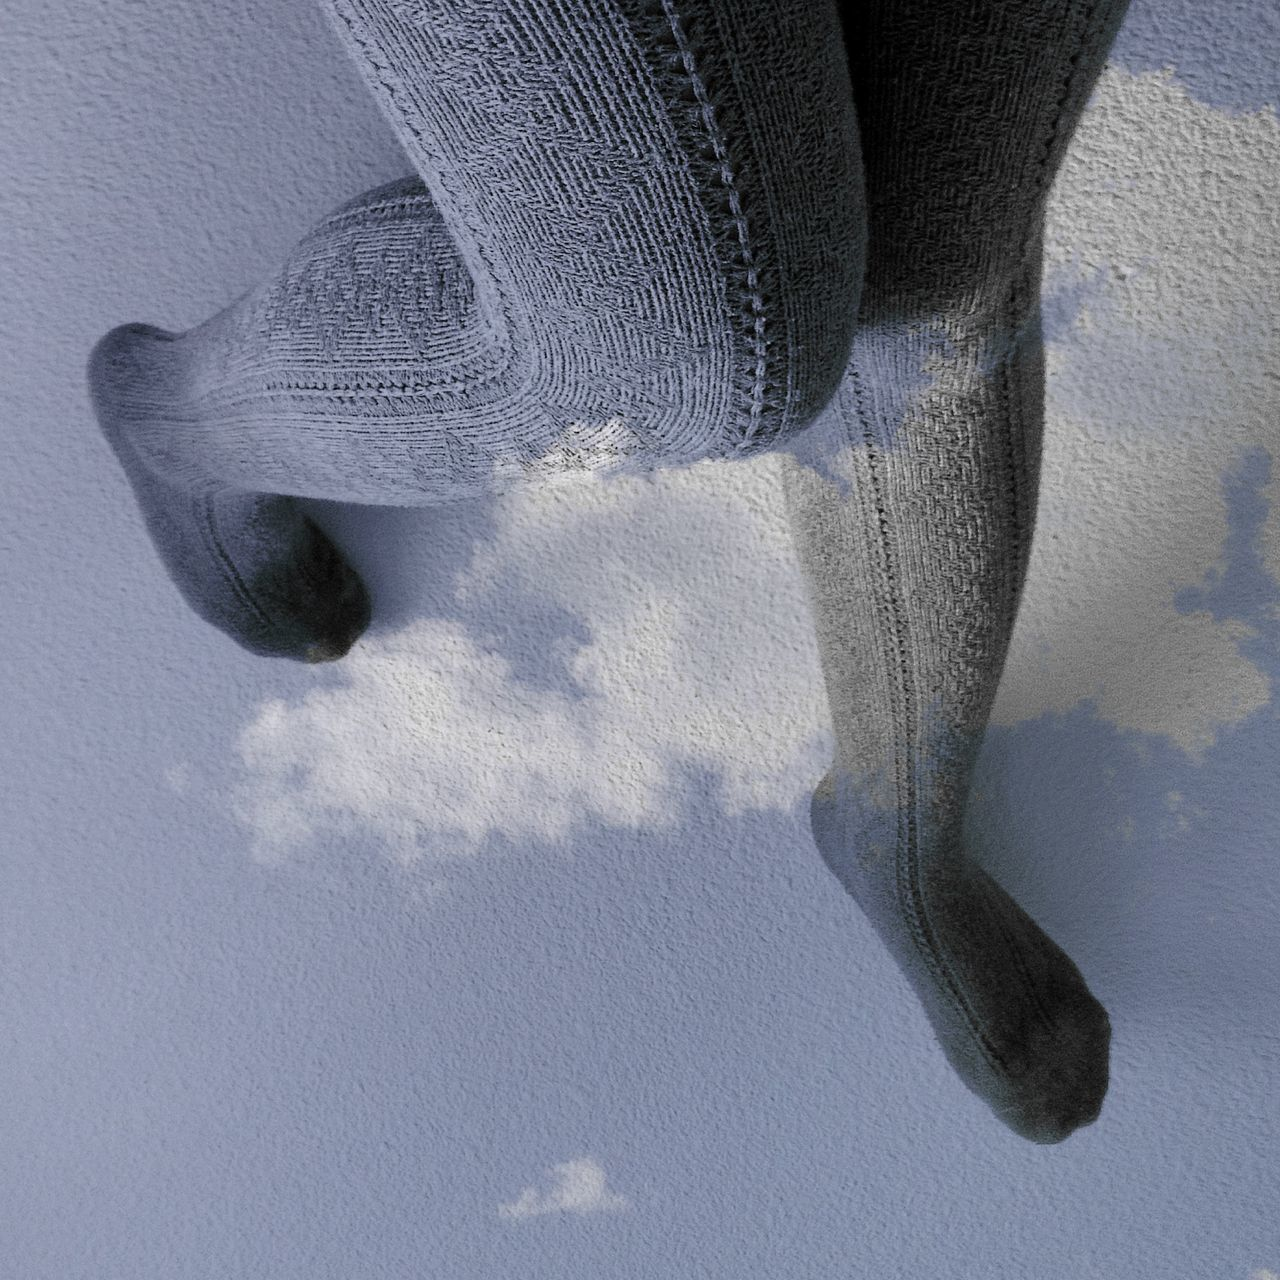 Multiple exposure of legs and clouds on floor